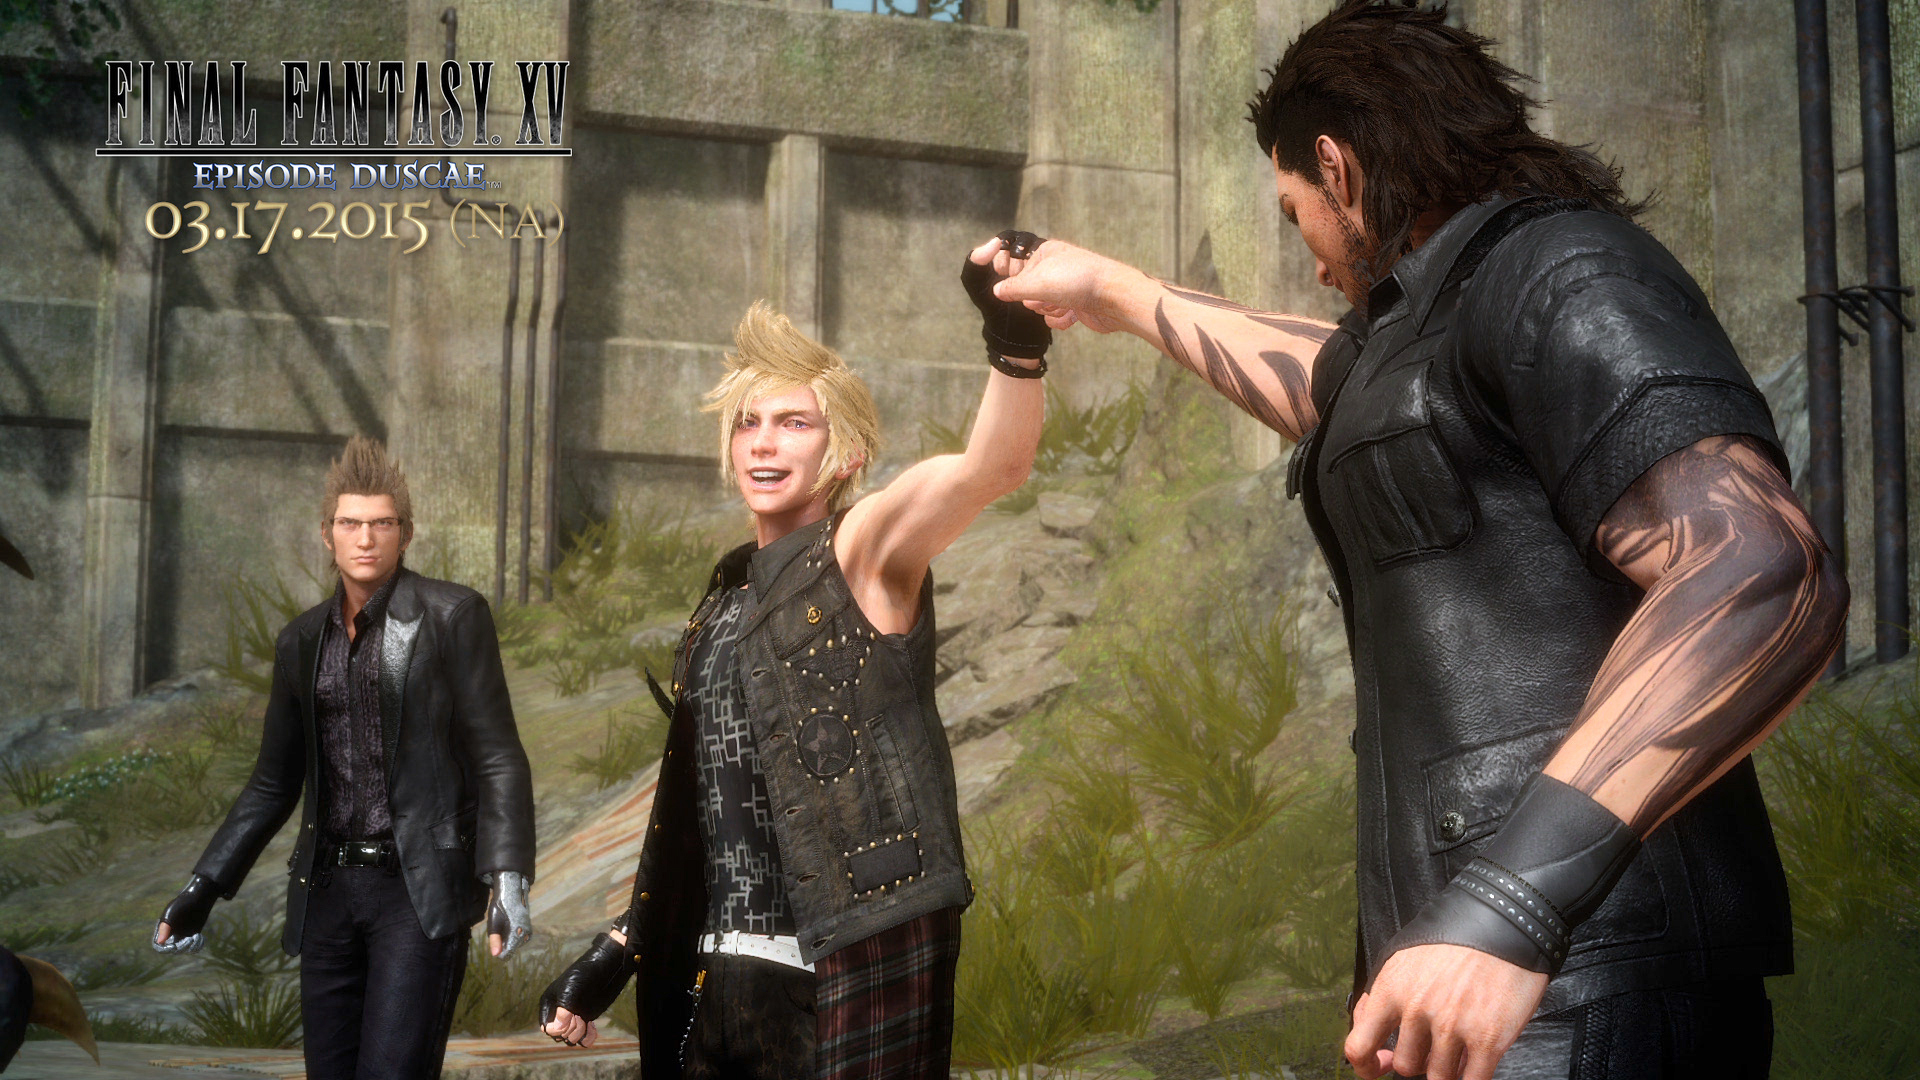 Final Fantasy XV Episode Duscae 160215 8